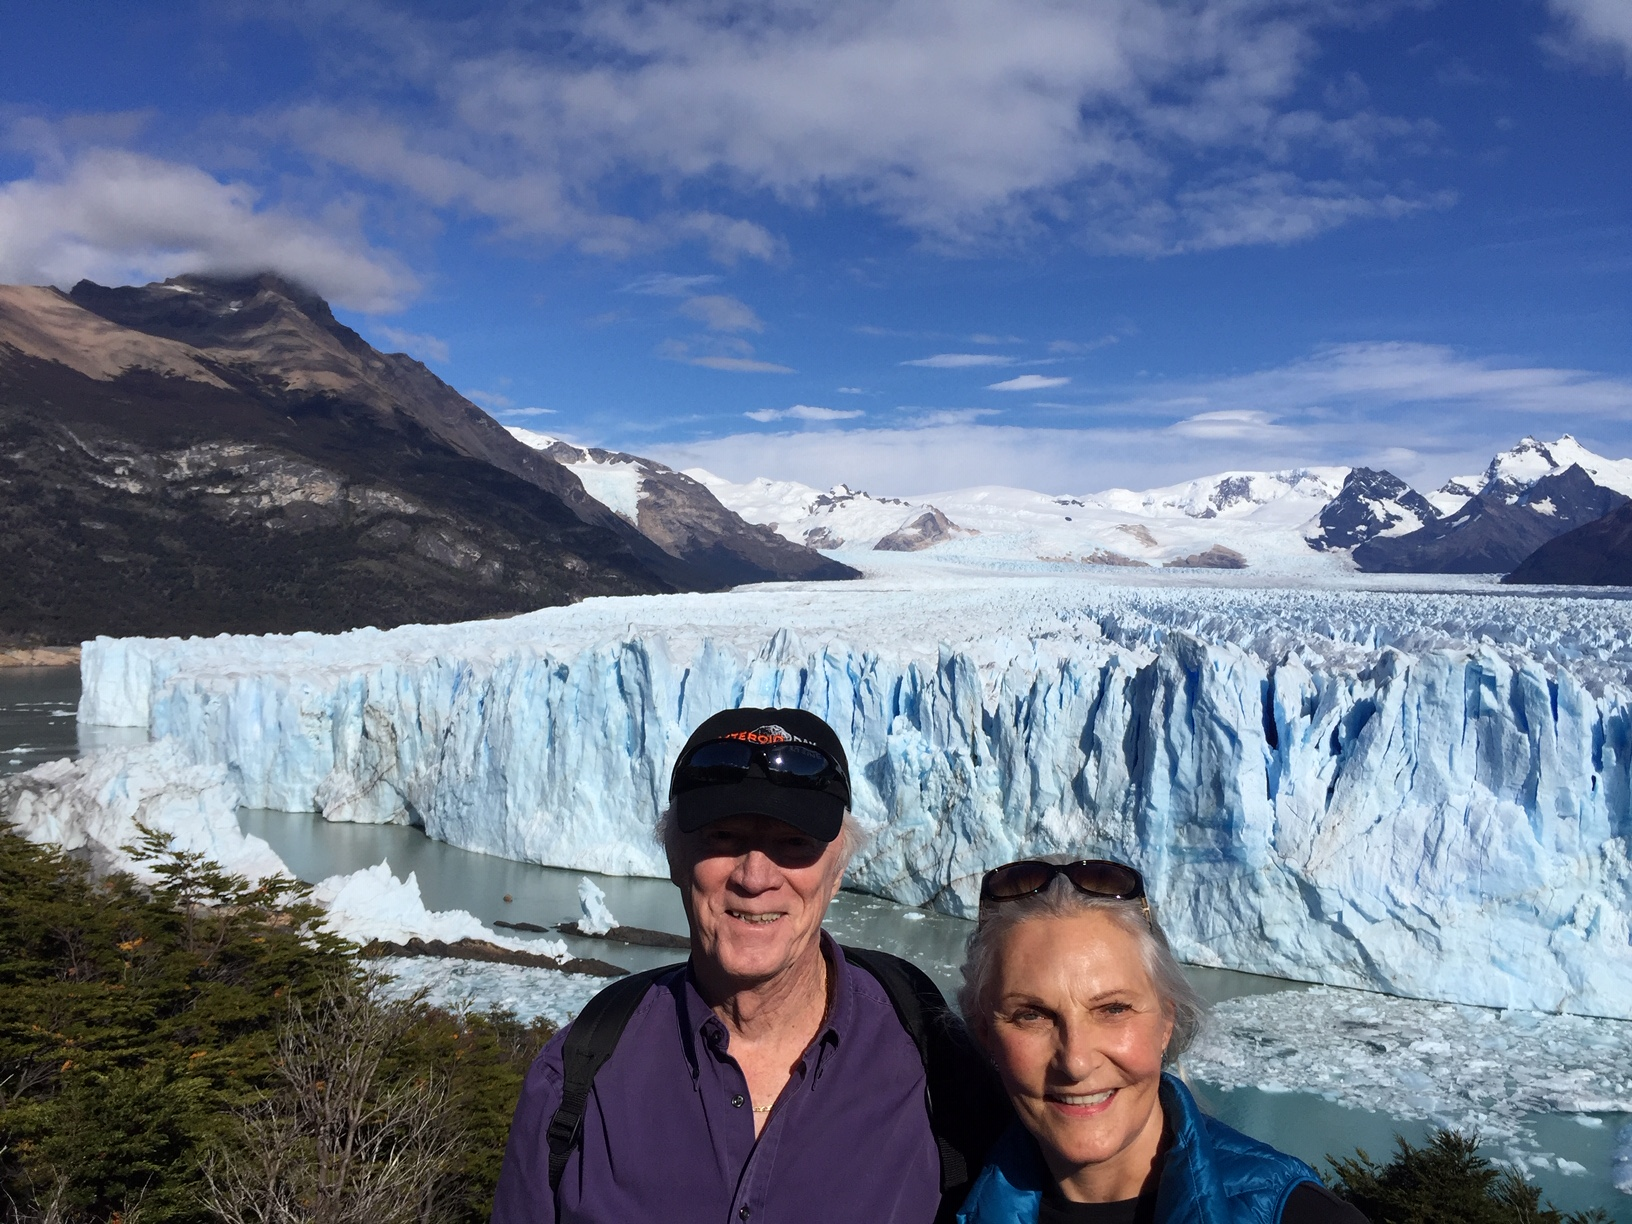 Nancy and I in front of the Perito Marino glacier outside El Calafate, Argentina